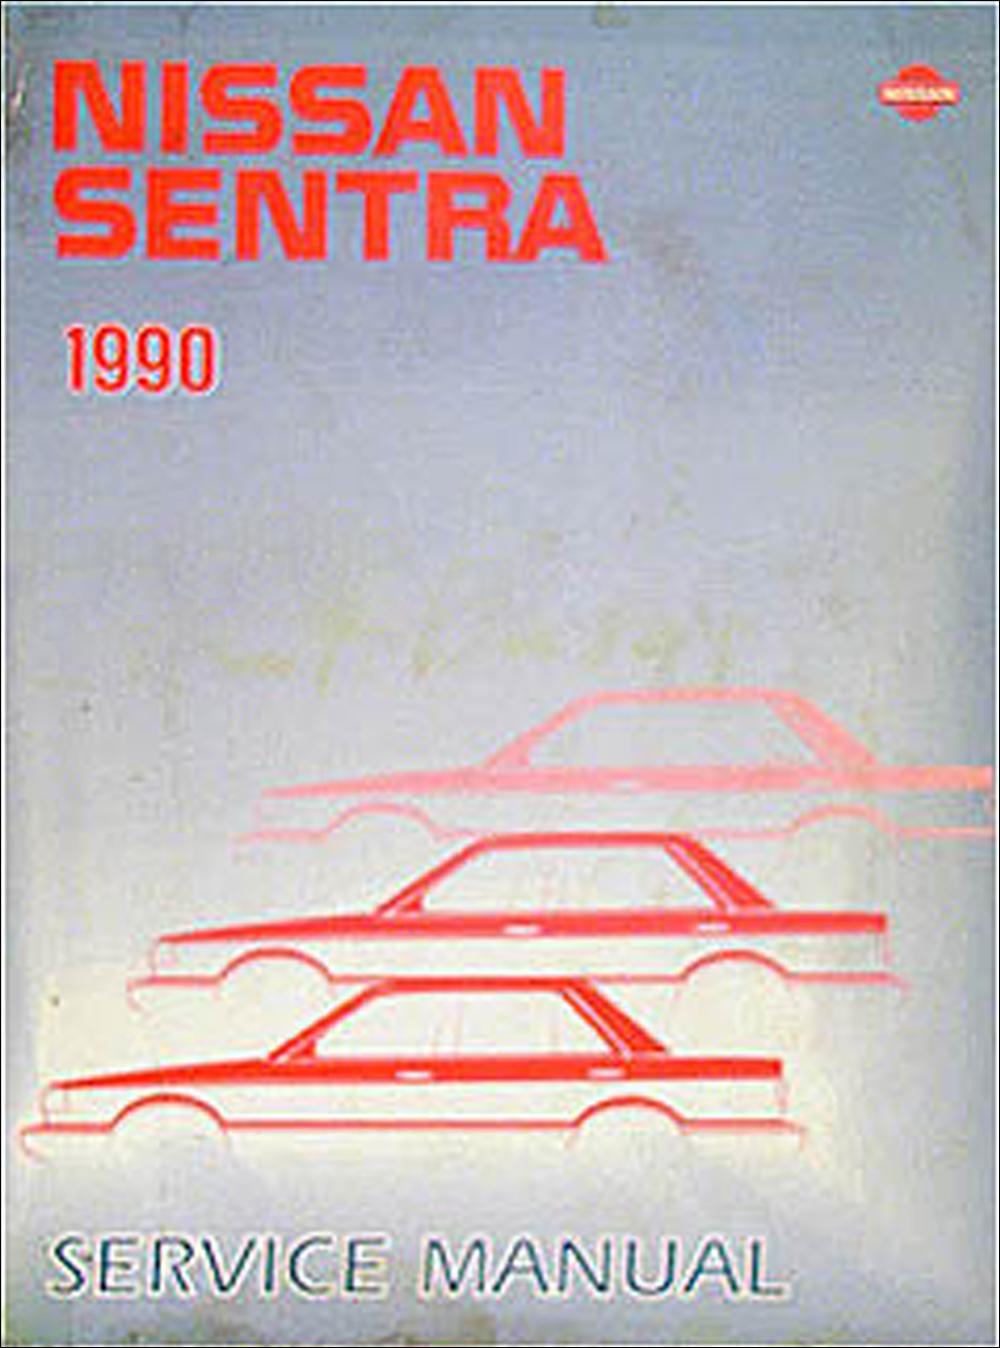 1990 Nissan Sentra Repair Manual Original